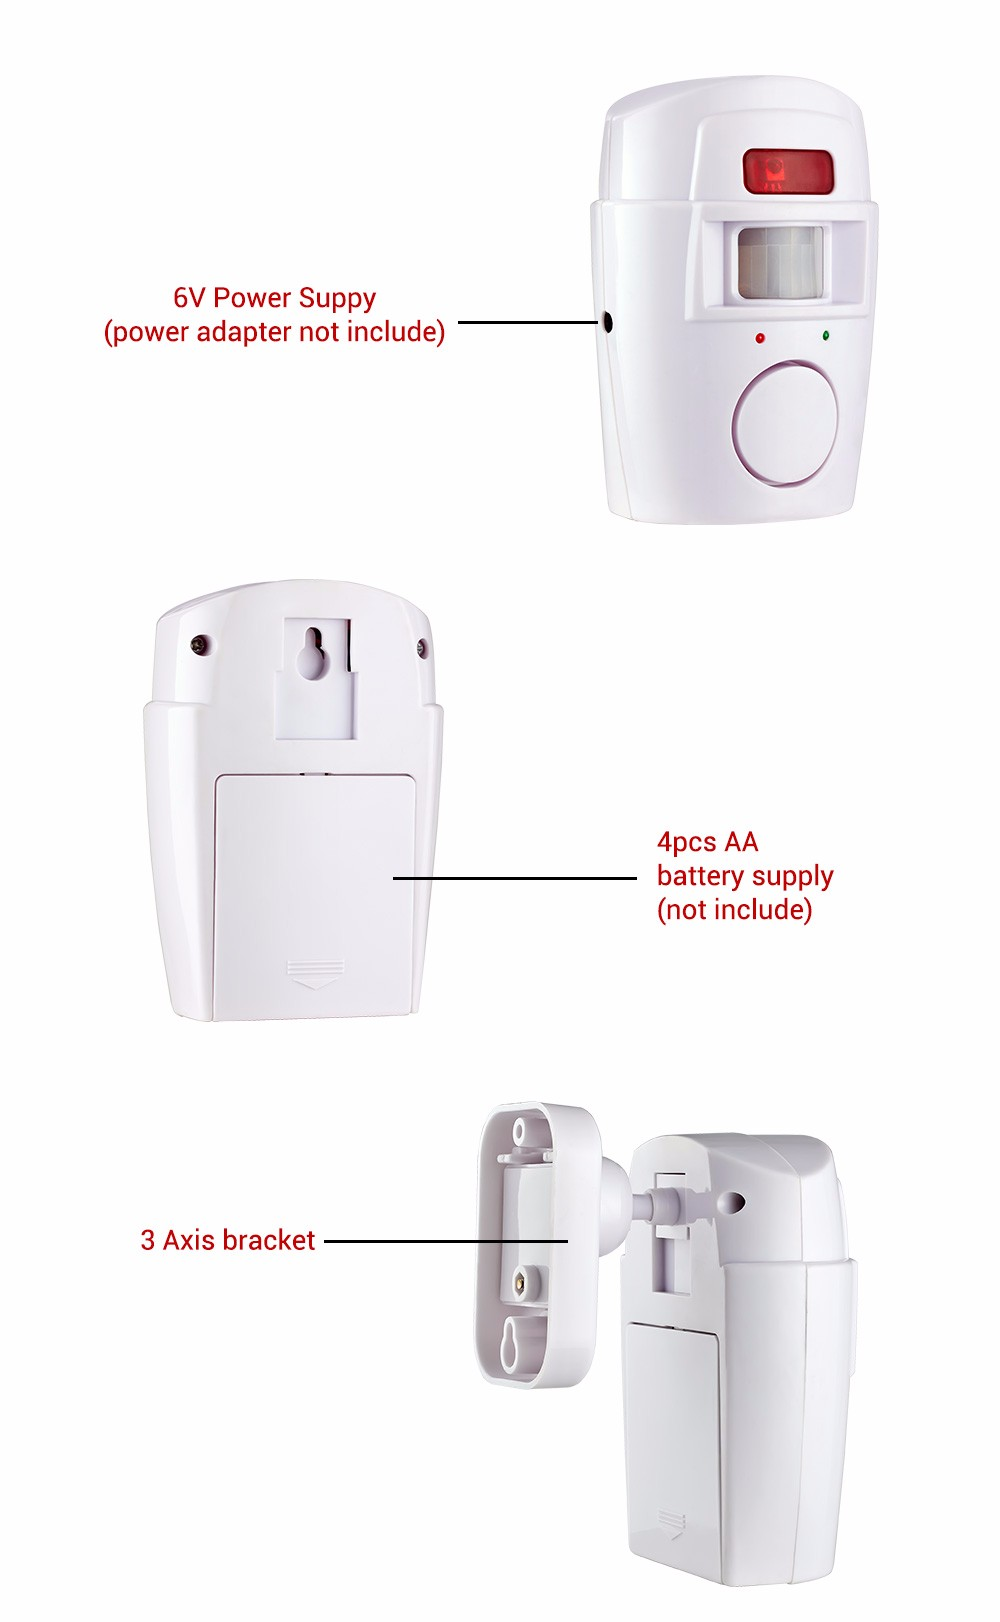 Security Alarm System Wireless Detector remote controllers PIR Infrared Motion Sensor alarm (